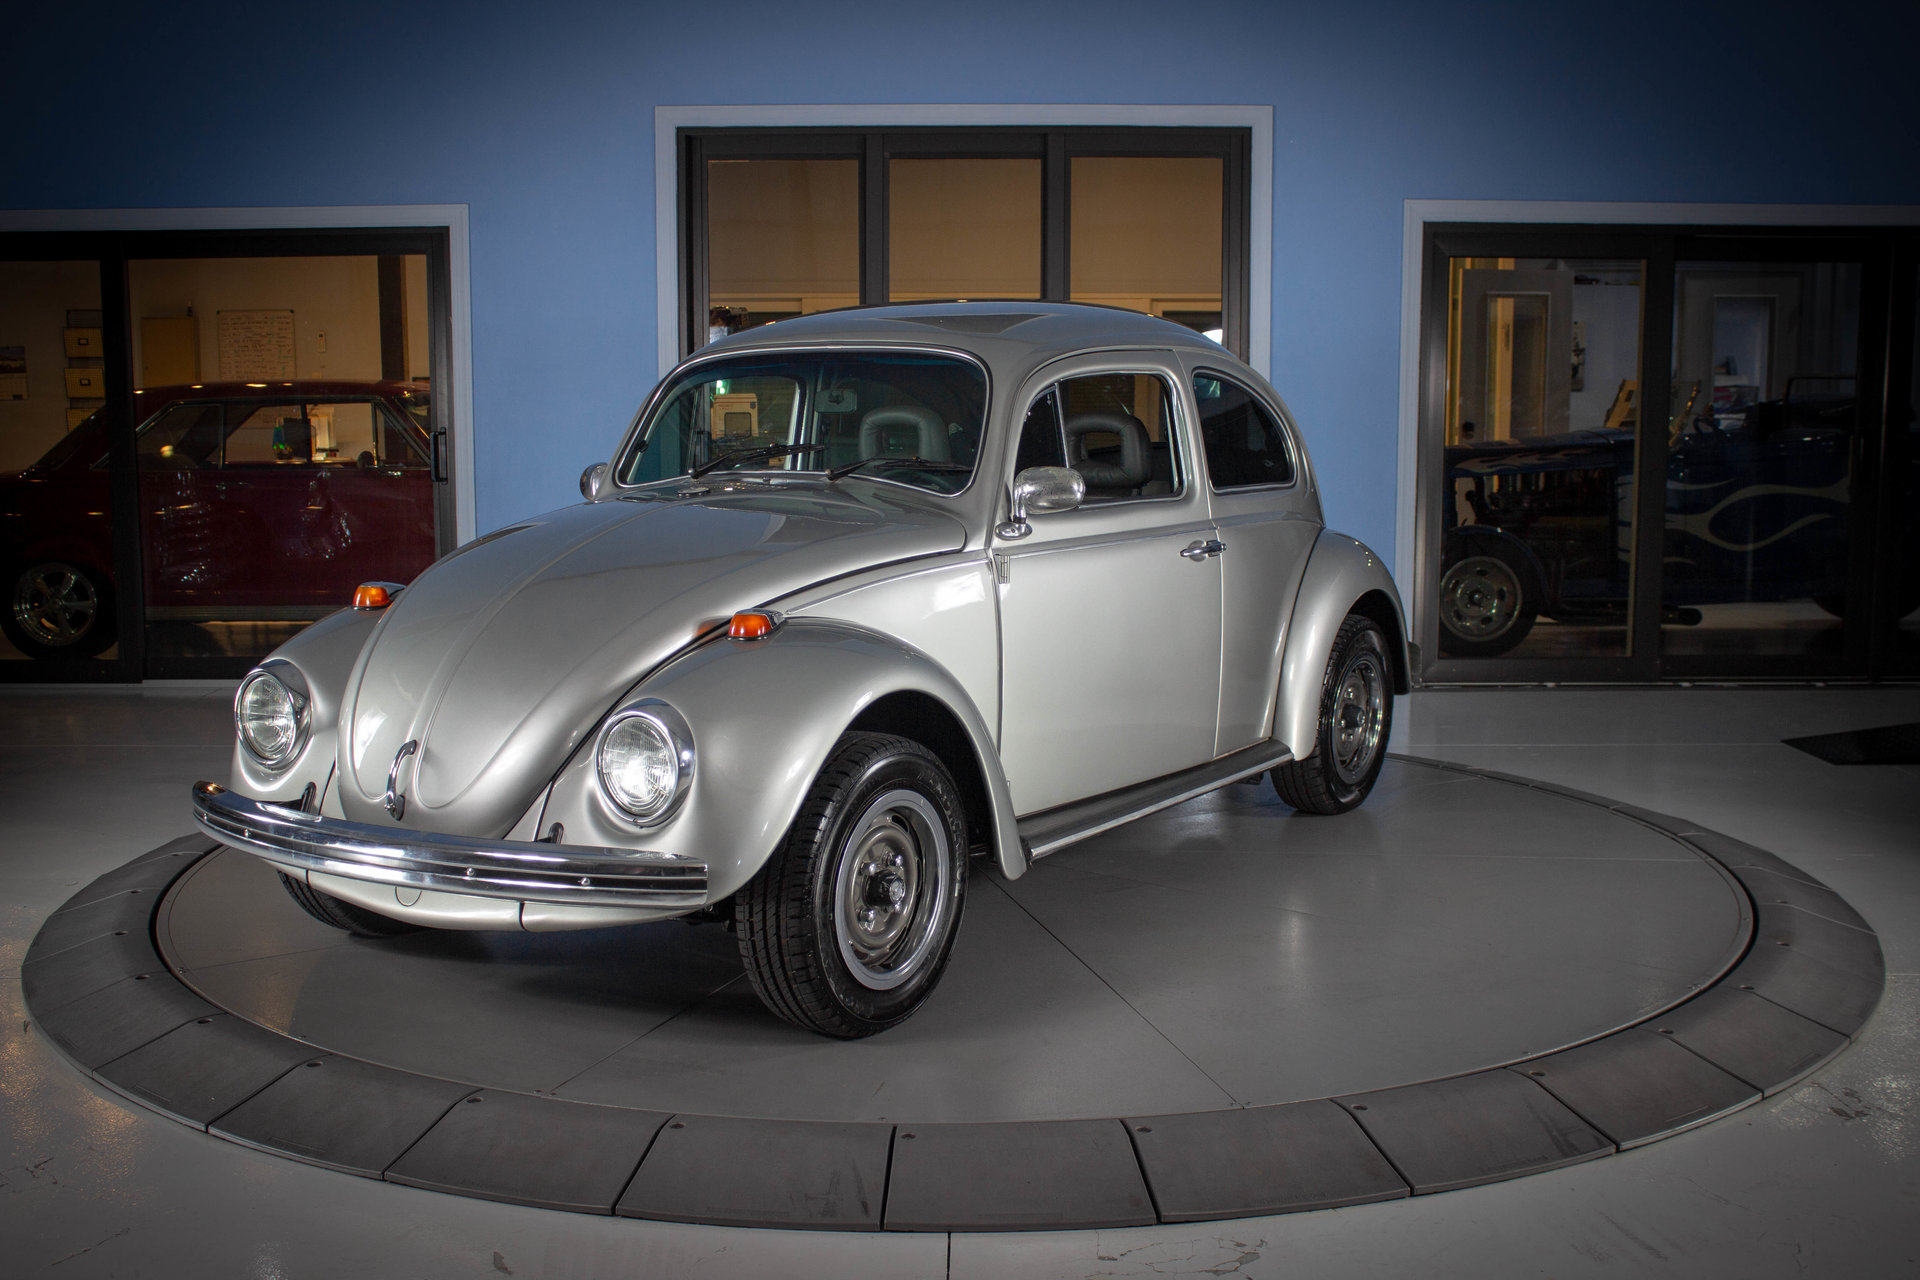 1974 volkswagen beetle classic cars used cars for sale. Black Bedroom Furniture Sets. Home Design Ideas